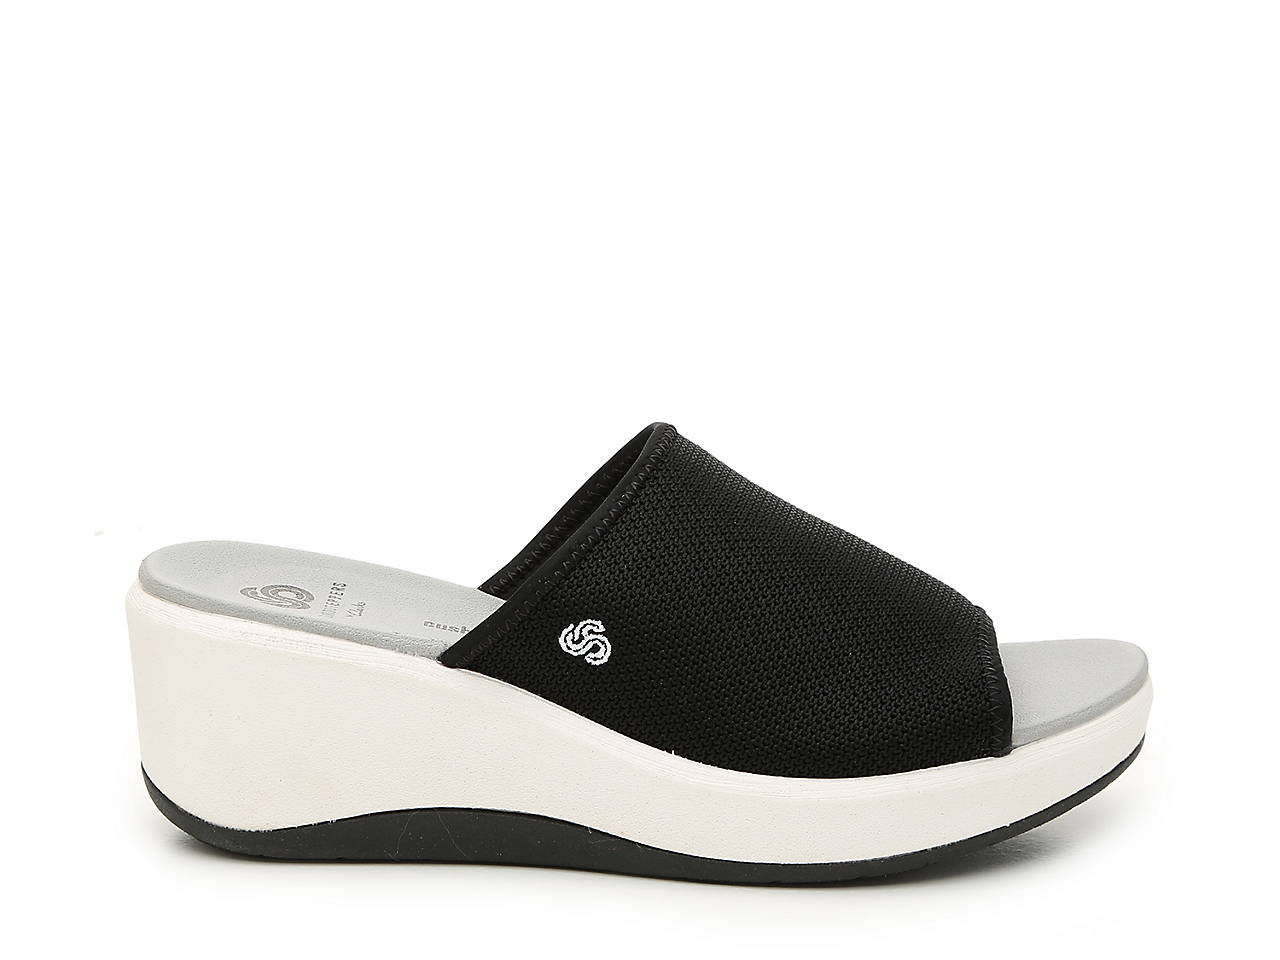 6150d87a22f Cloudsteppers by Clarks Step Cali Bay Wedge Sandal Women s Shoes